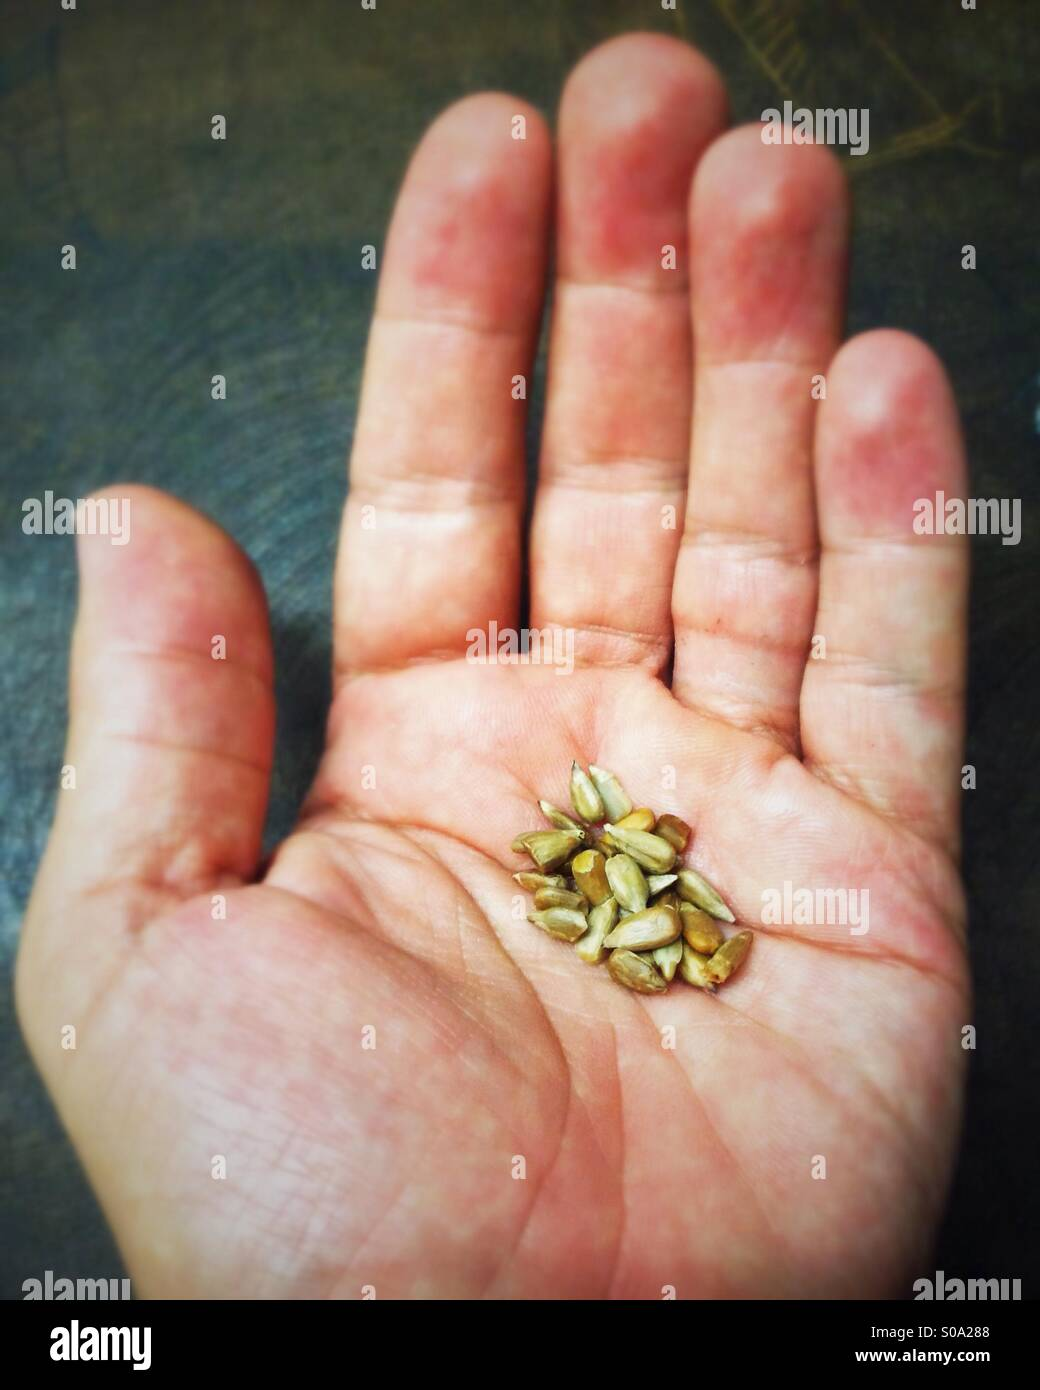 Seeds in a man's hand. - Stock Image